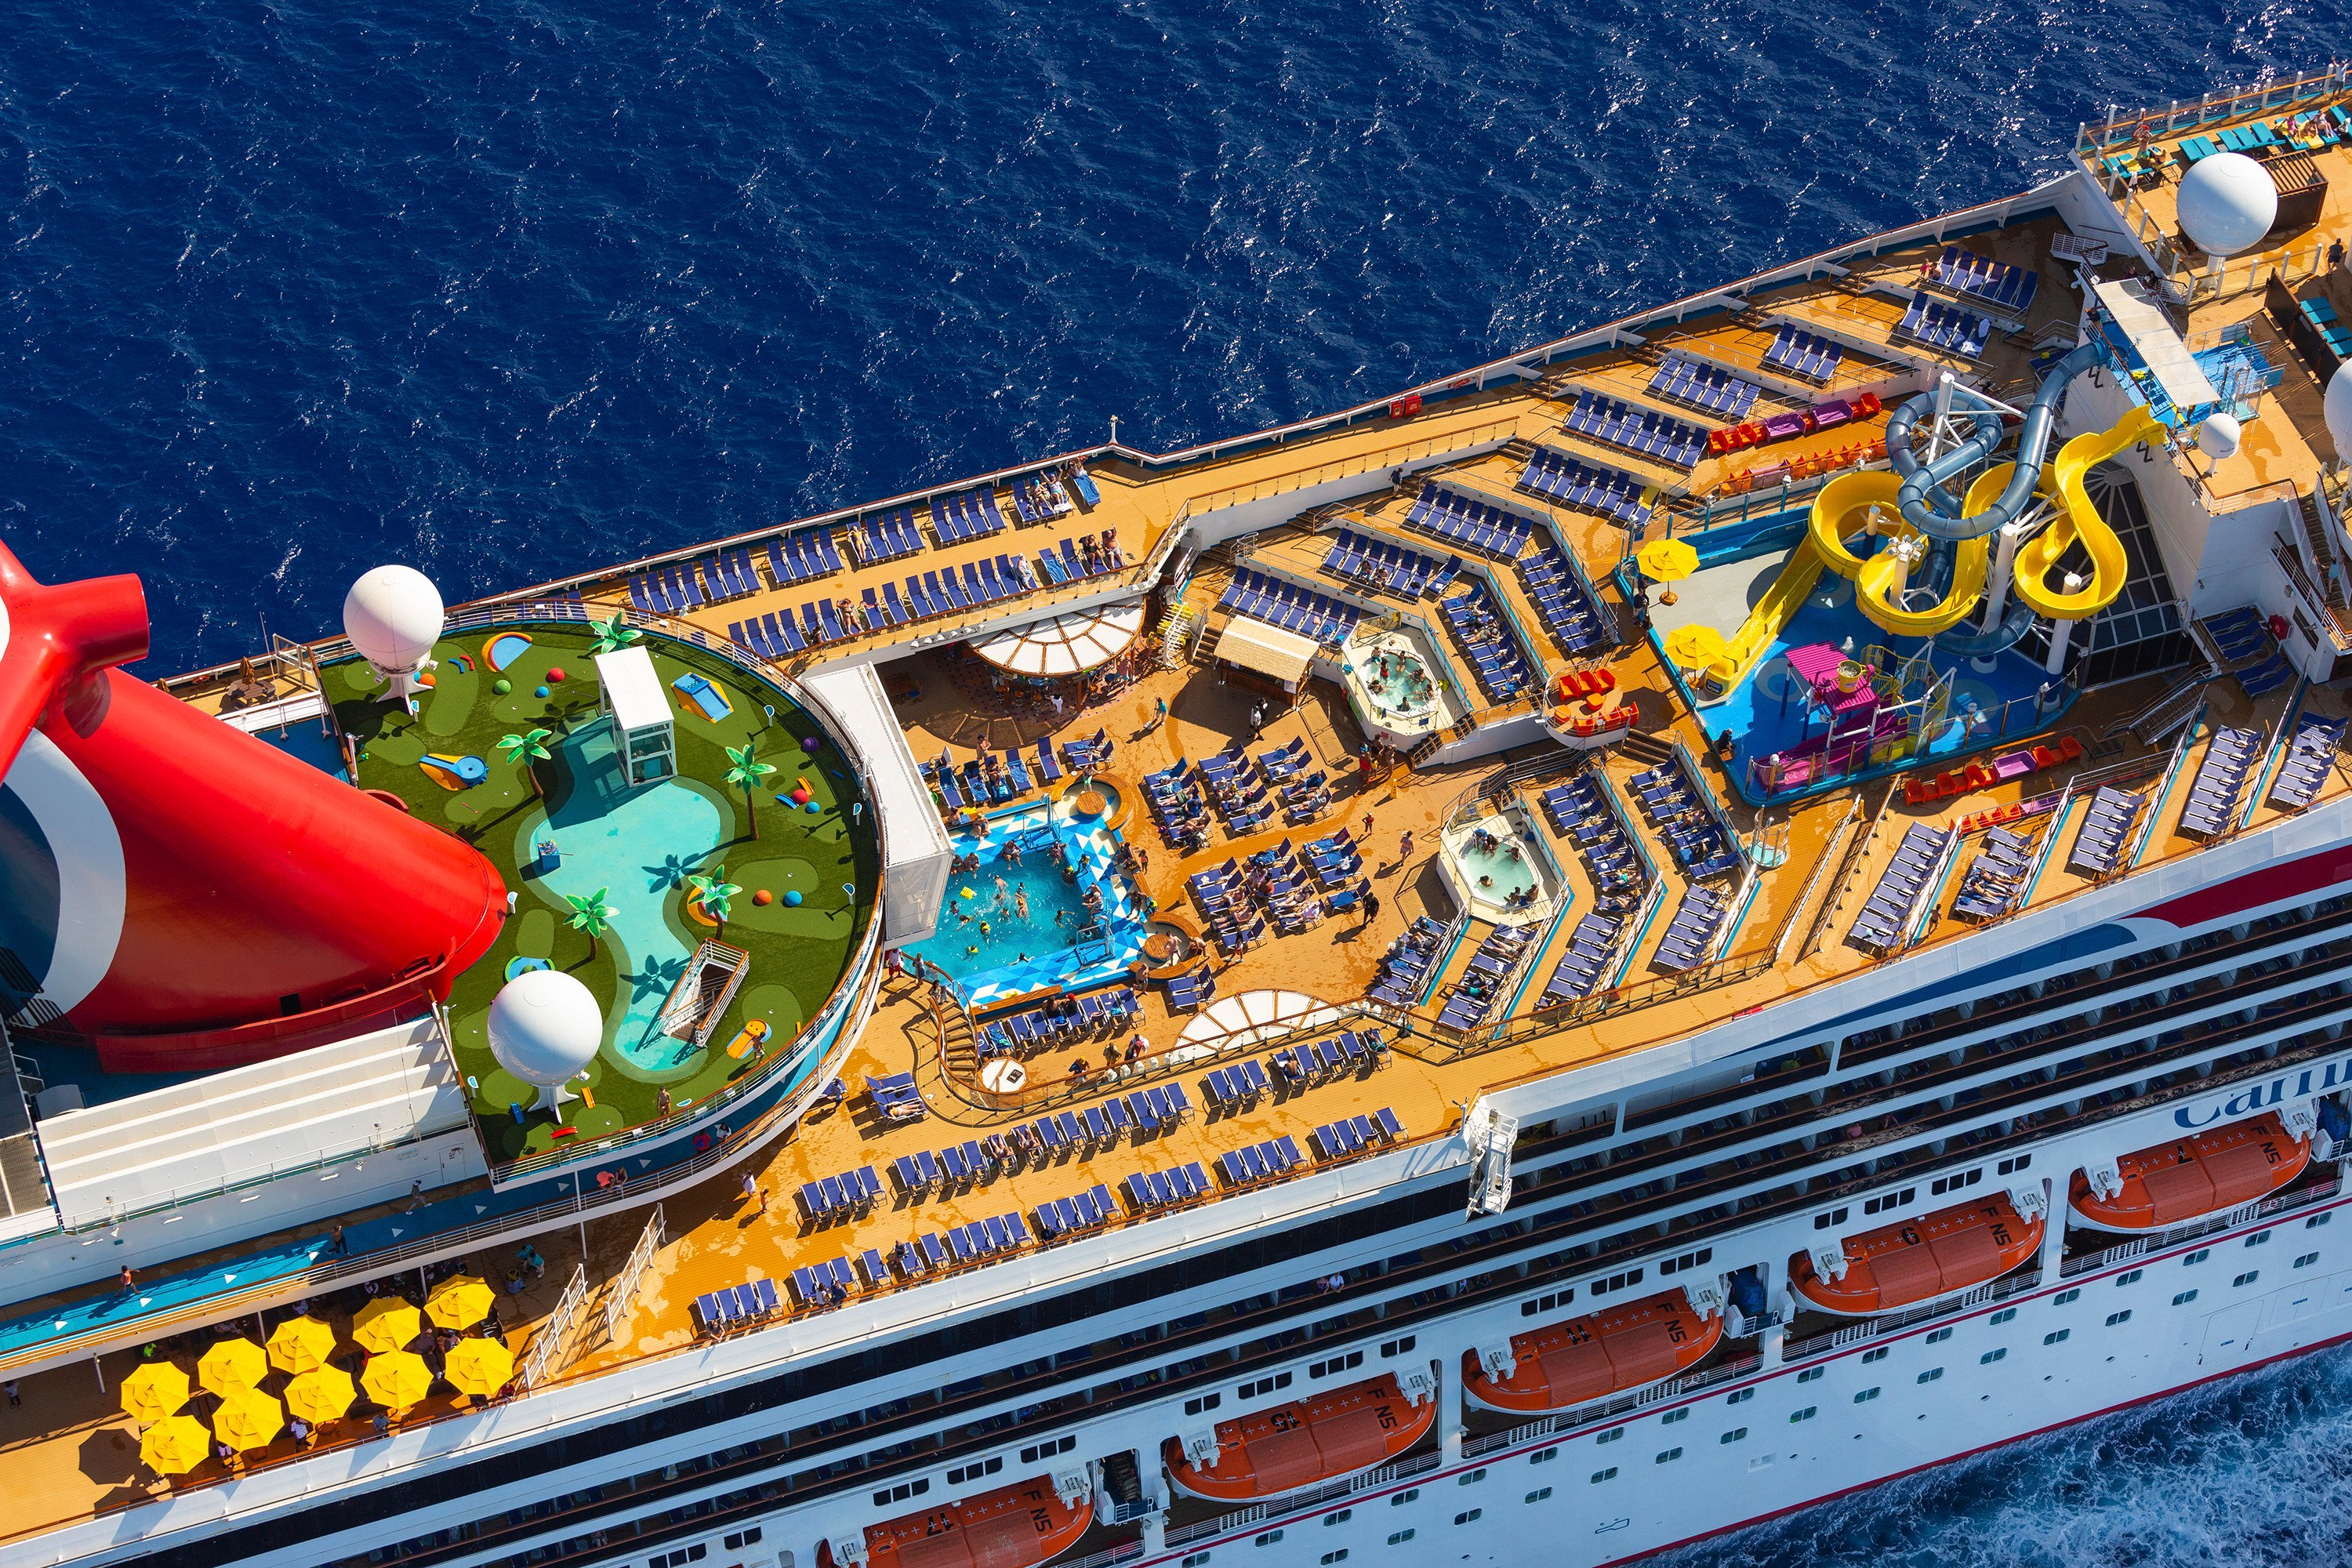 Carnival-Cruise-Line-General-Ship-Image-